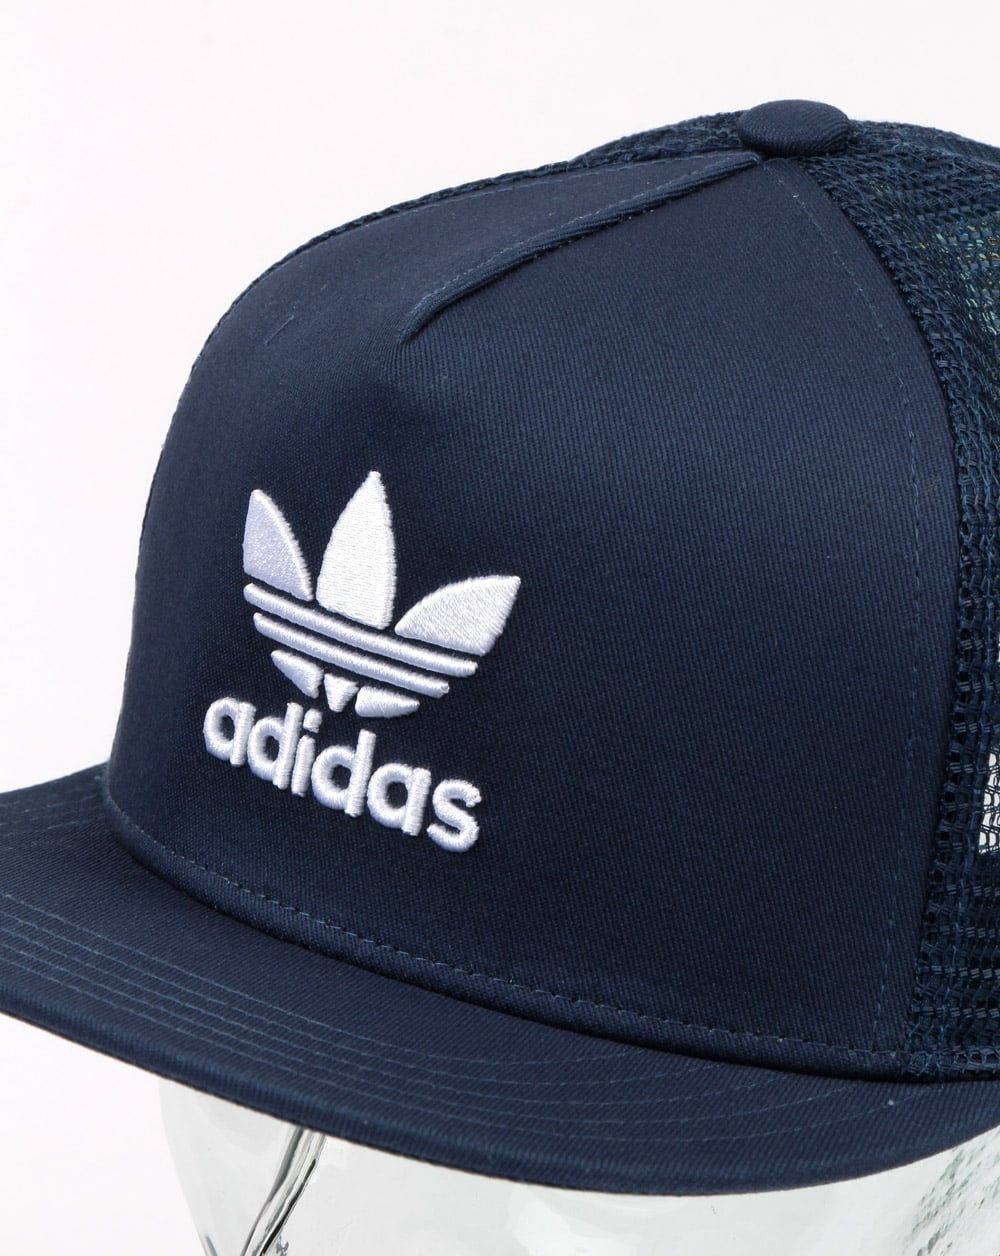 b9e5956c Adidas Originals Trefoil Trucker Cap Rich Blue, Mens, Hat, Adjustable